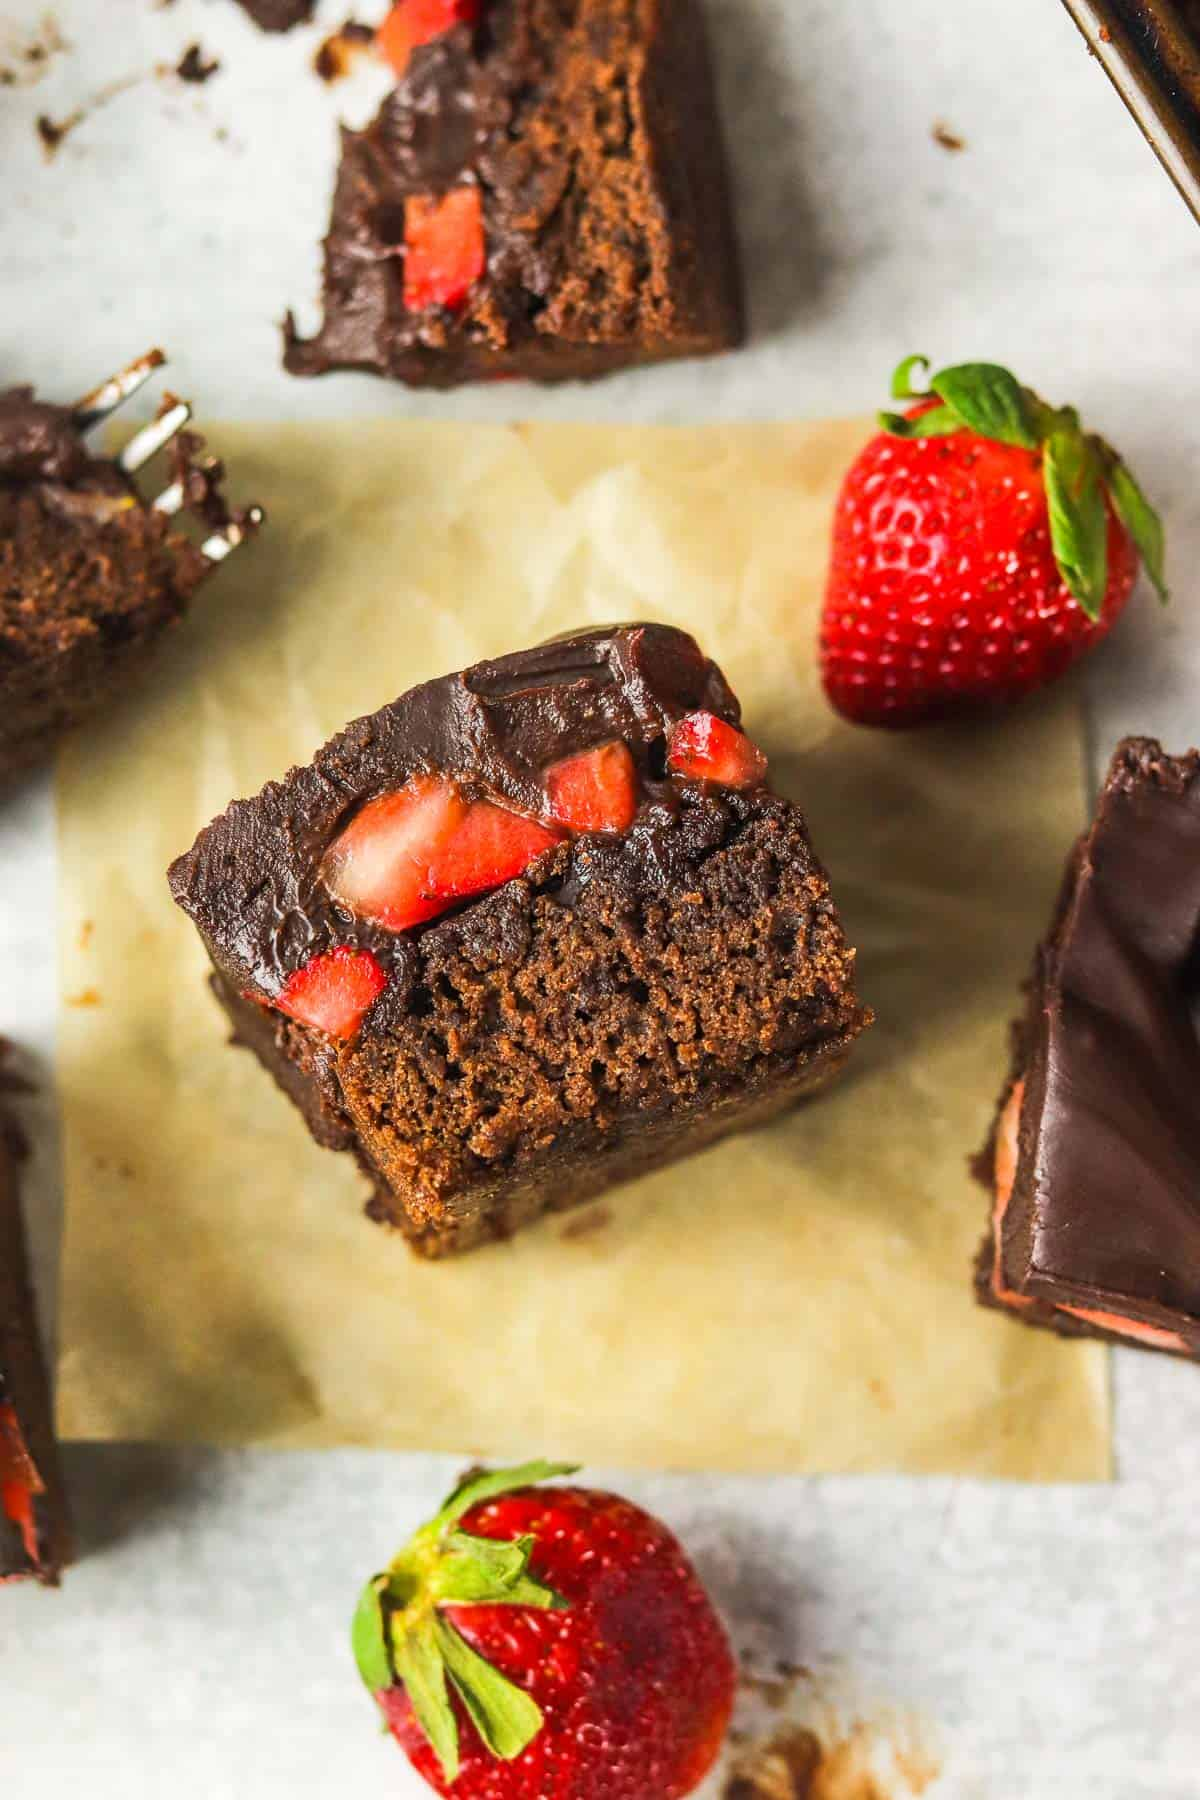 chocolate covered strawberry brownie on it's side.